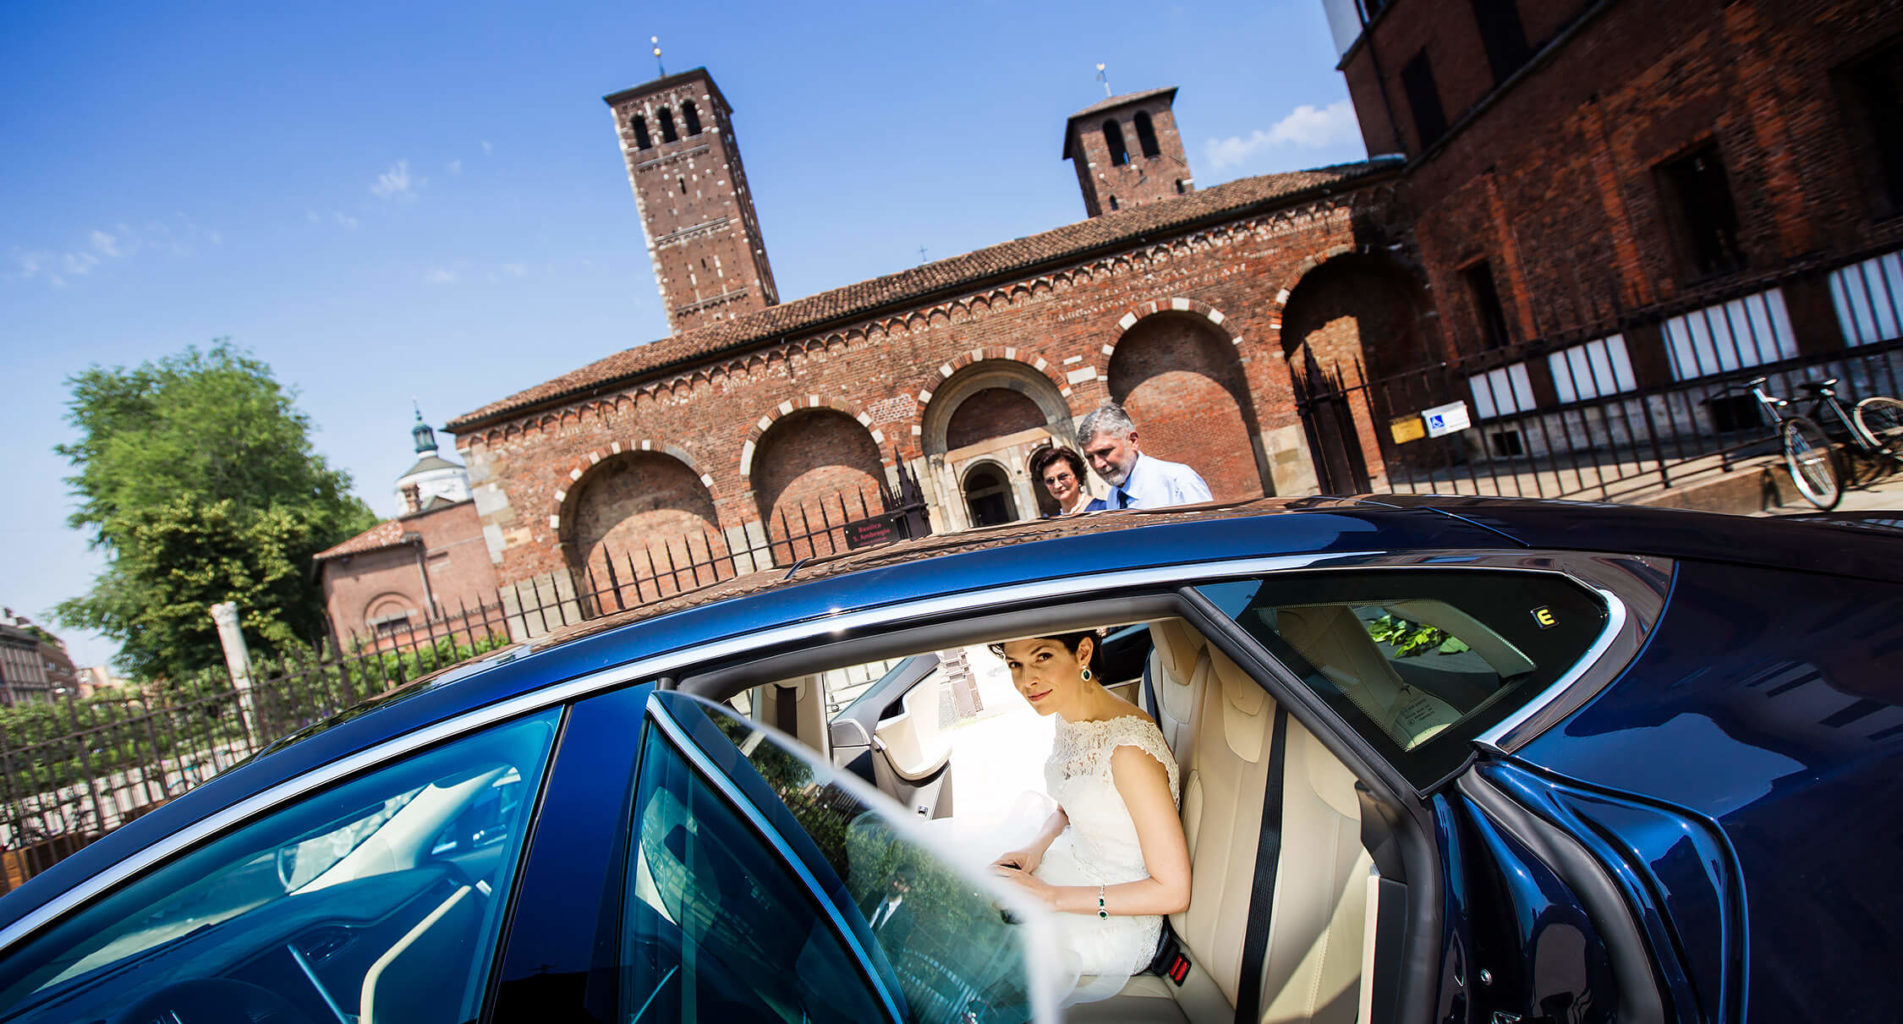 The bride arrives by car to the Basilica of Sant'Ambrogio in Milan, a wedding photo by Nino Lombardo